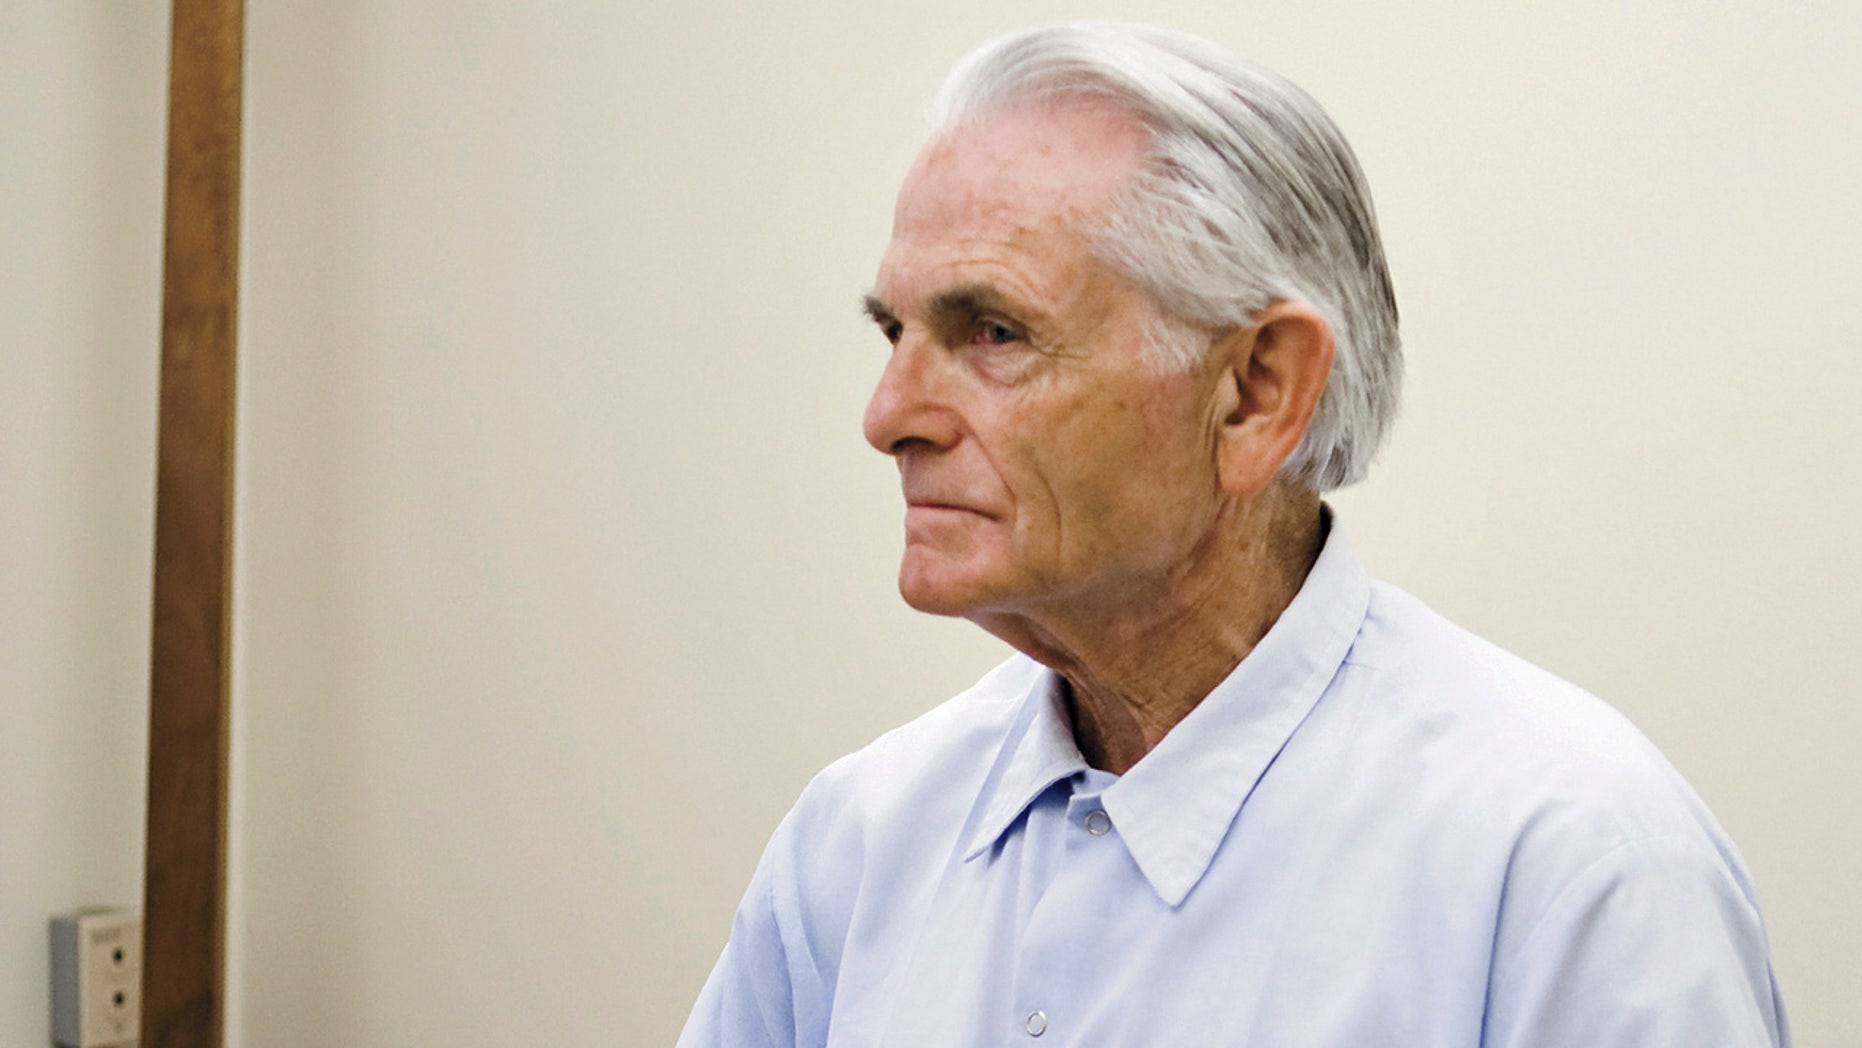 FILE - In this Oct. 4, 2012 file photo, Bruce Davis waits for the start of a parole hearing at the California Mens Colony in San Luis Obispo, Calif.